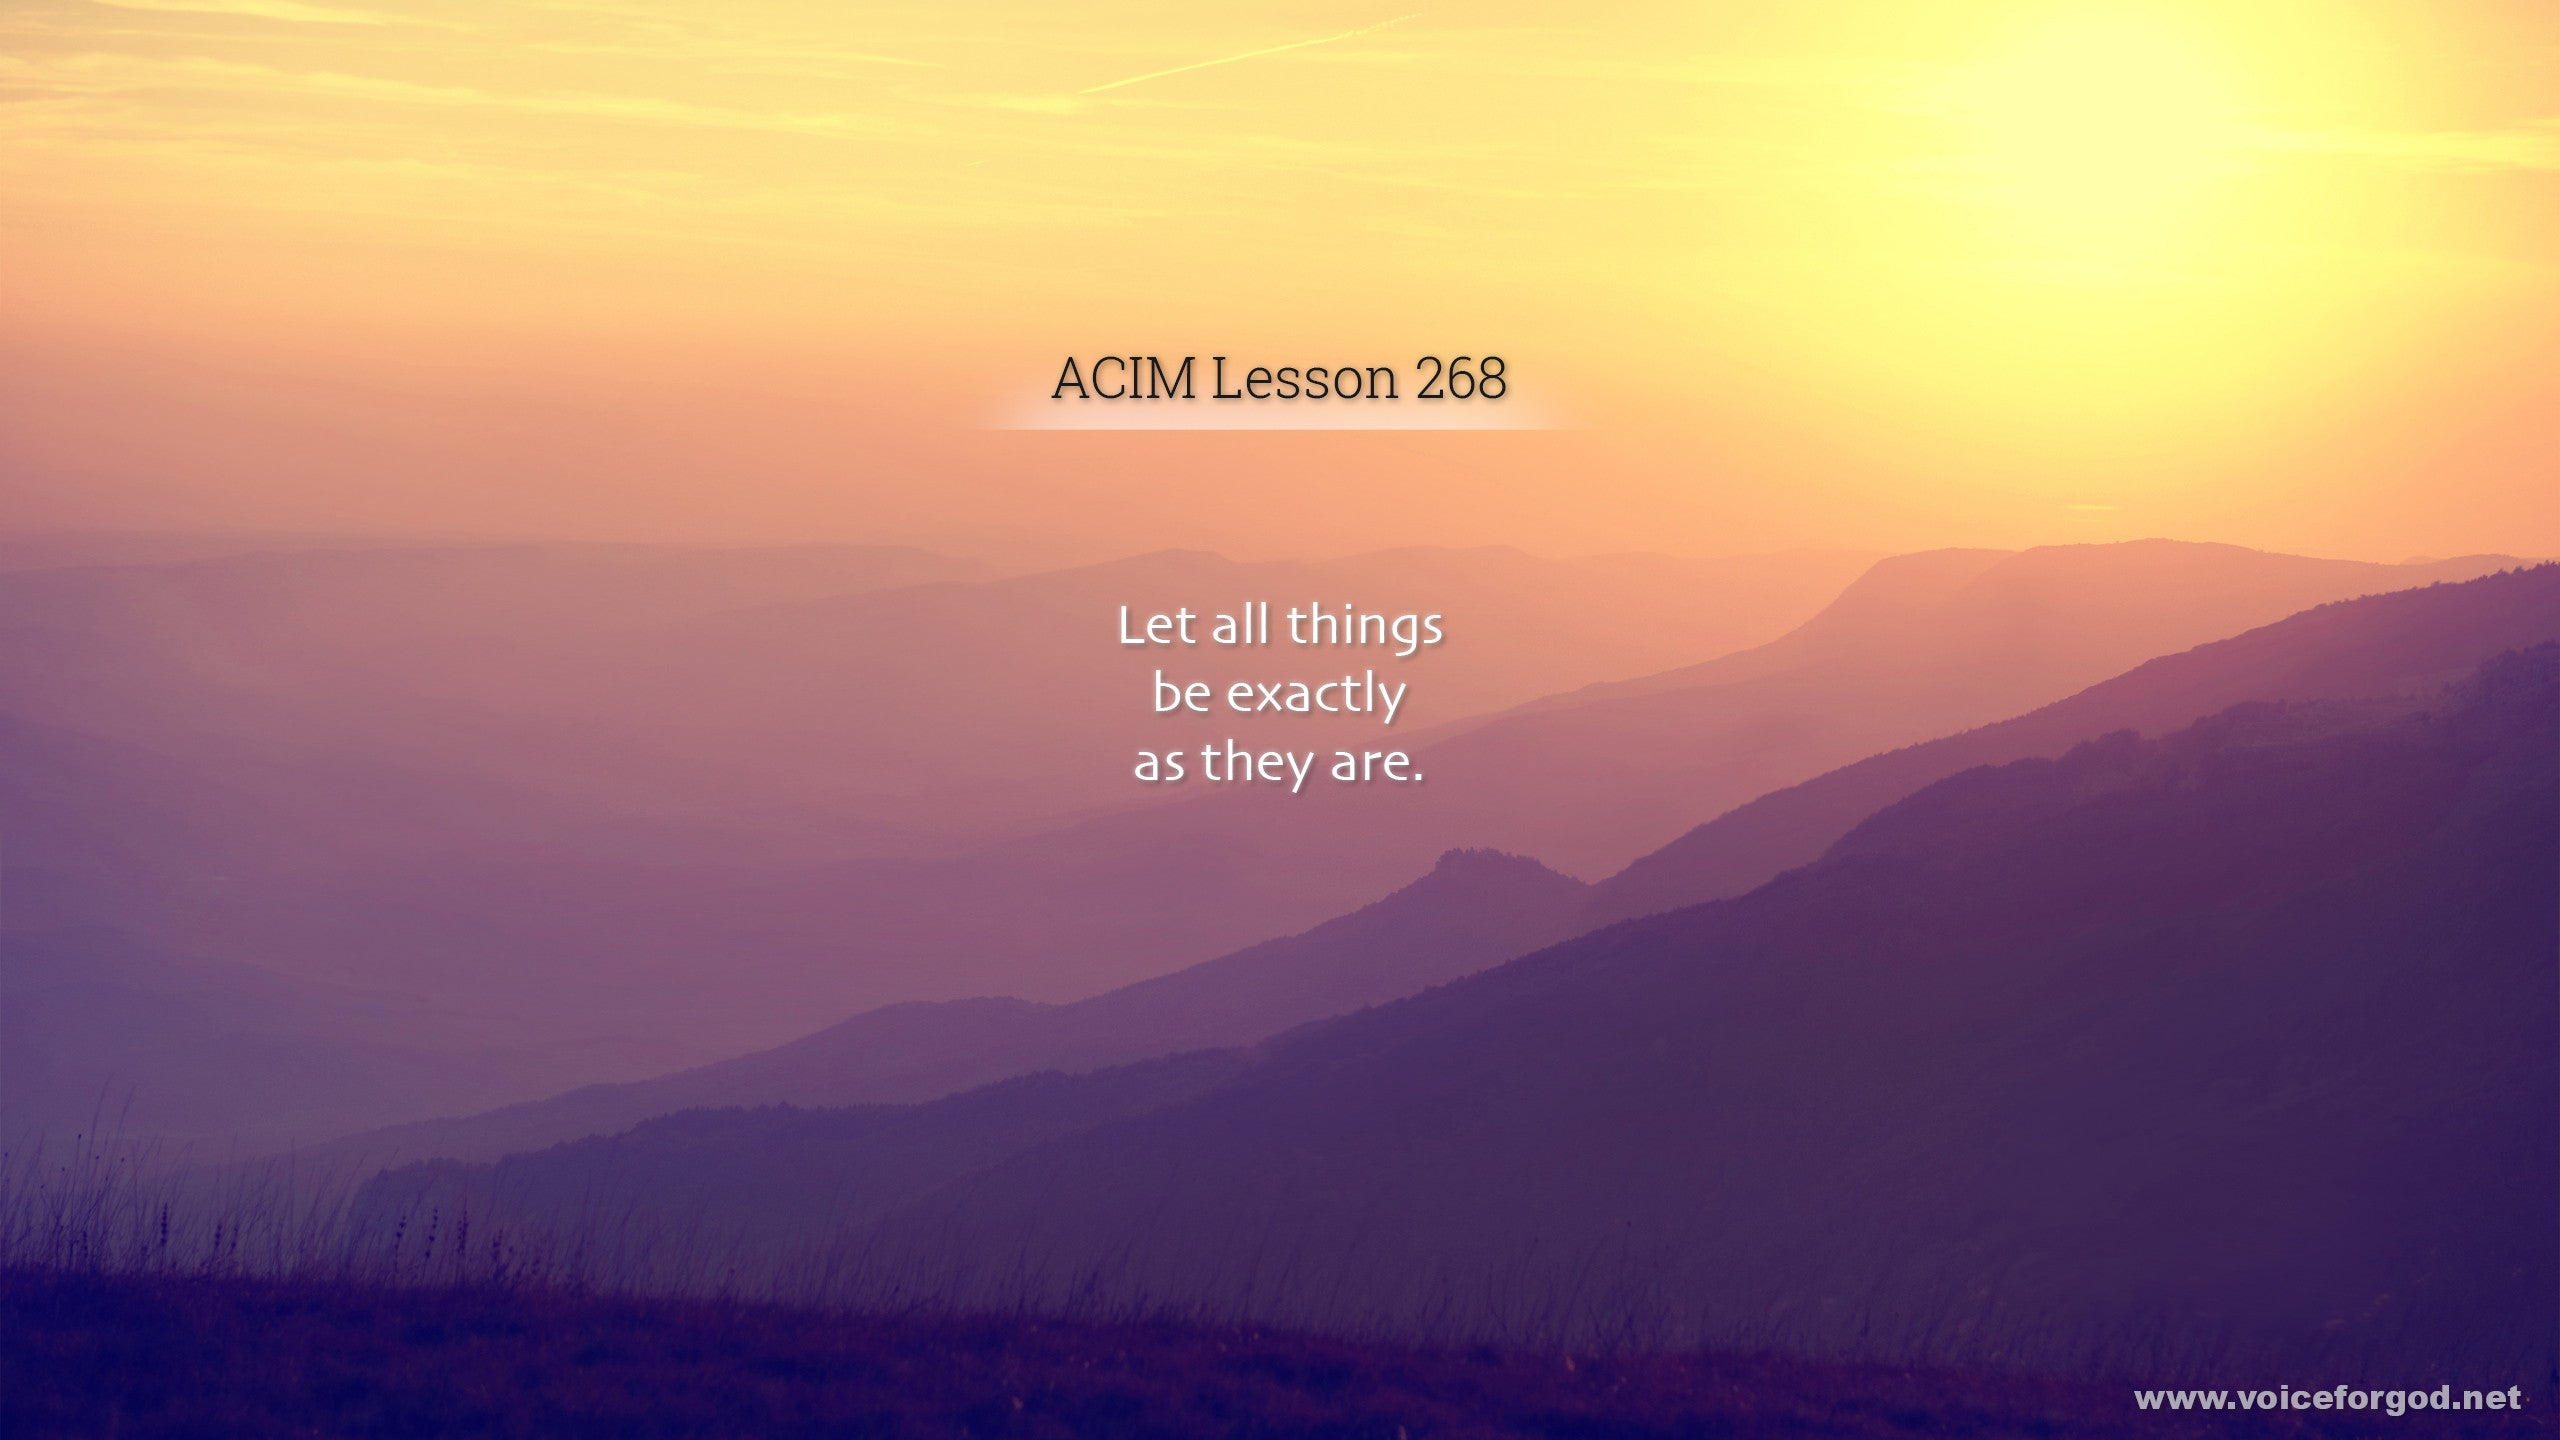 ACIM Lesson 268 - A Course in Miracles Workbook Lesson 268